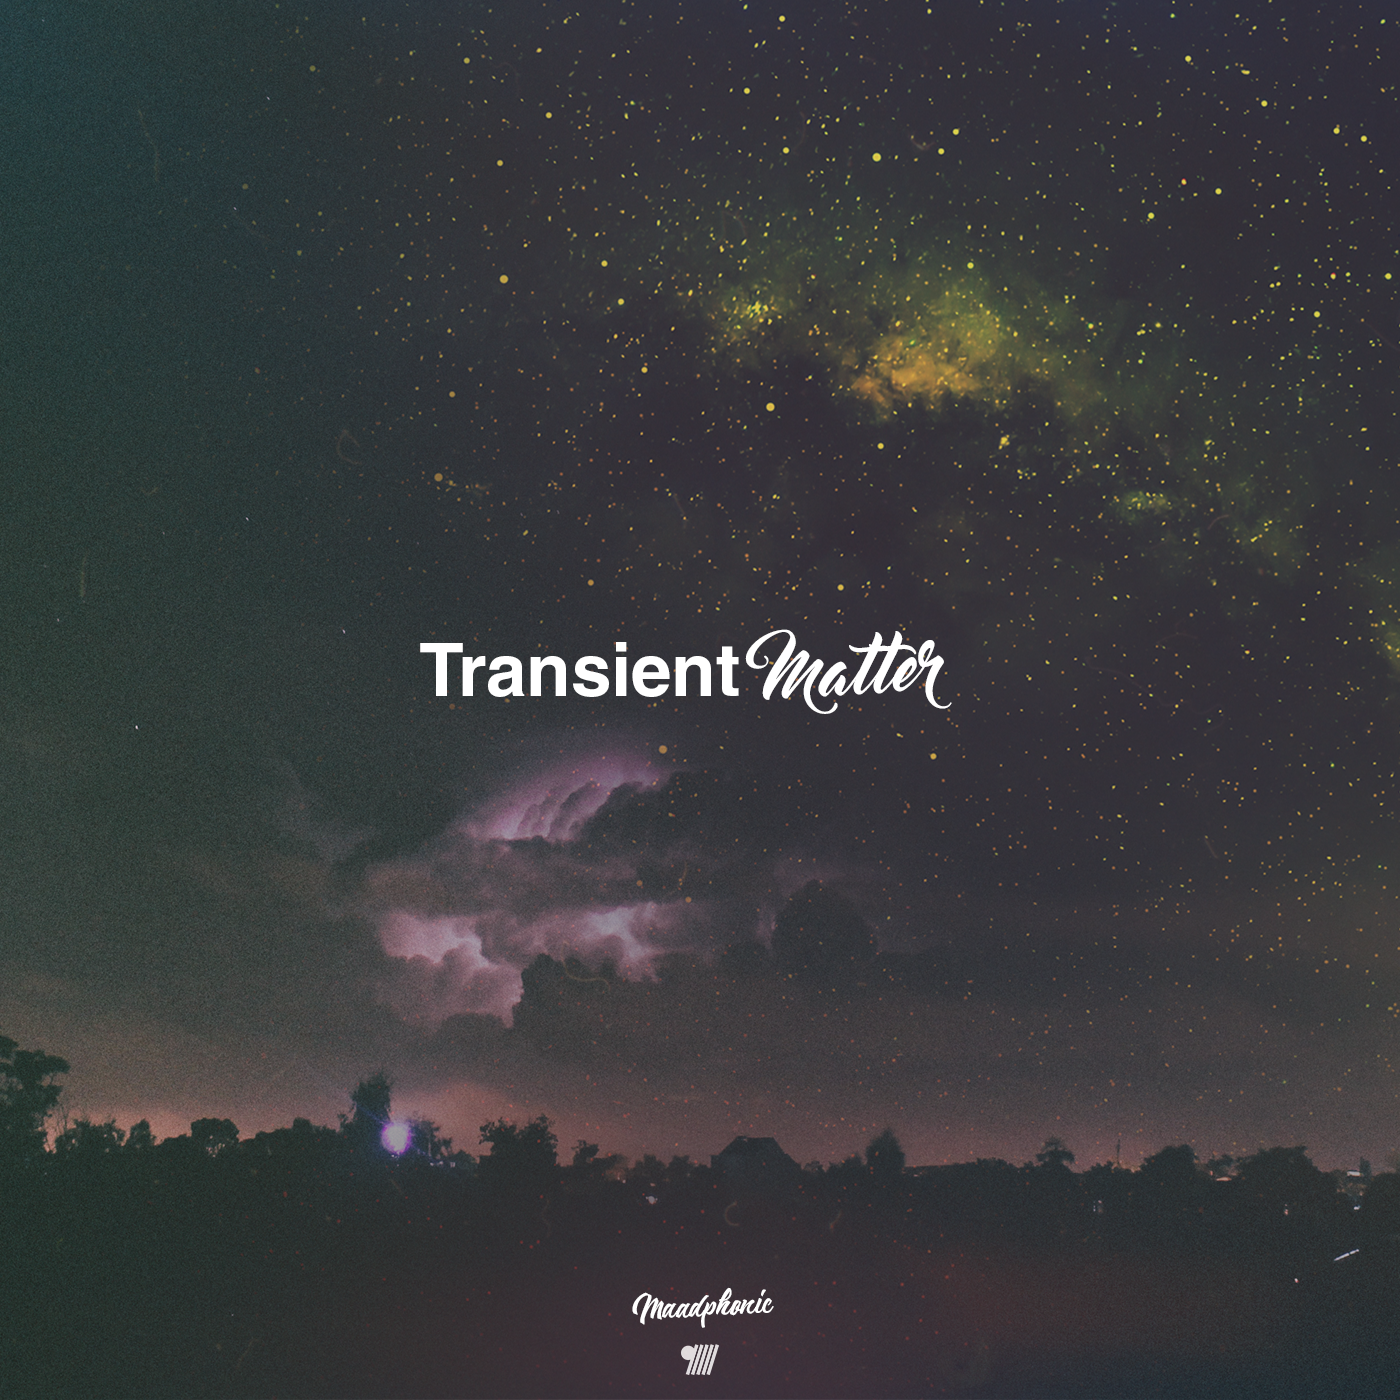 Maad Phonic - Transient Matter EP